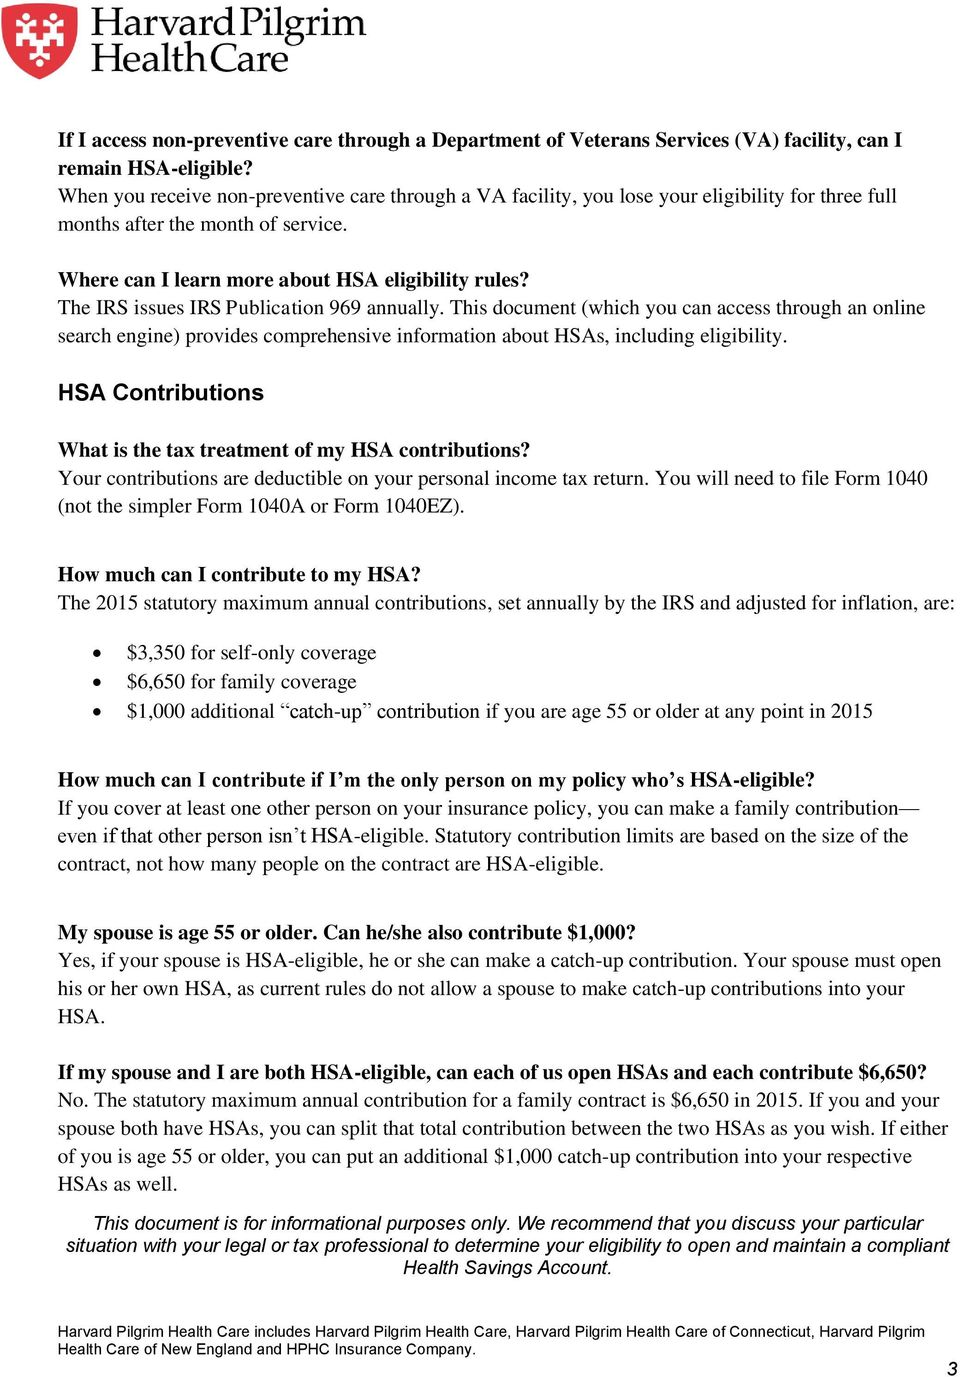 The IRS issues IRS Publication 969 annually. This document (which you can access through an online search engine) provides comprehensive information about HSAs, including eligibility.